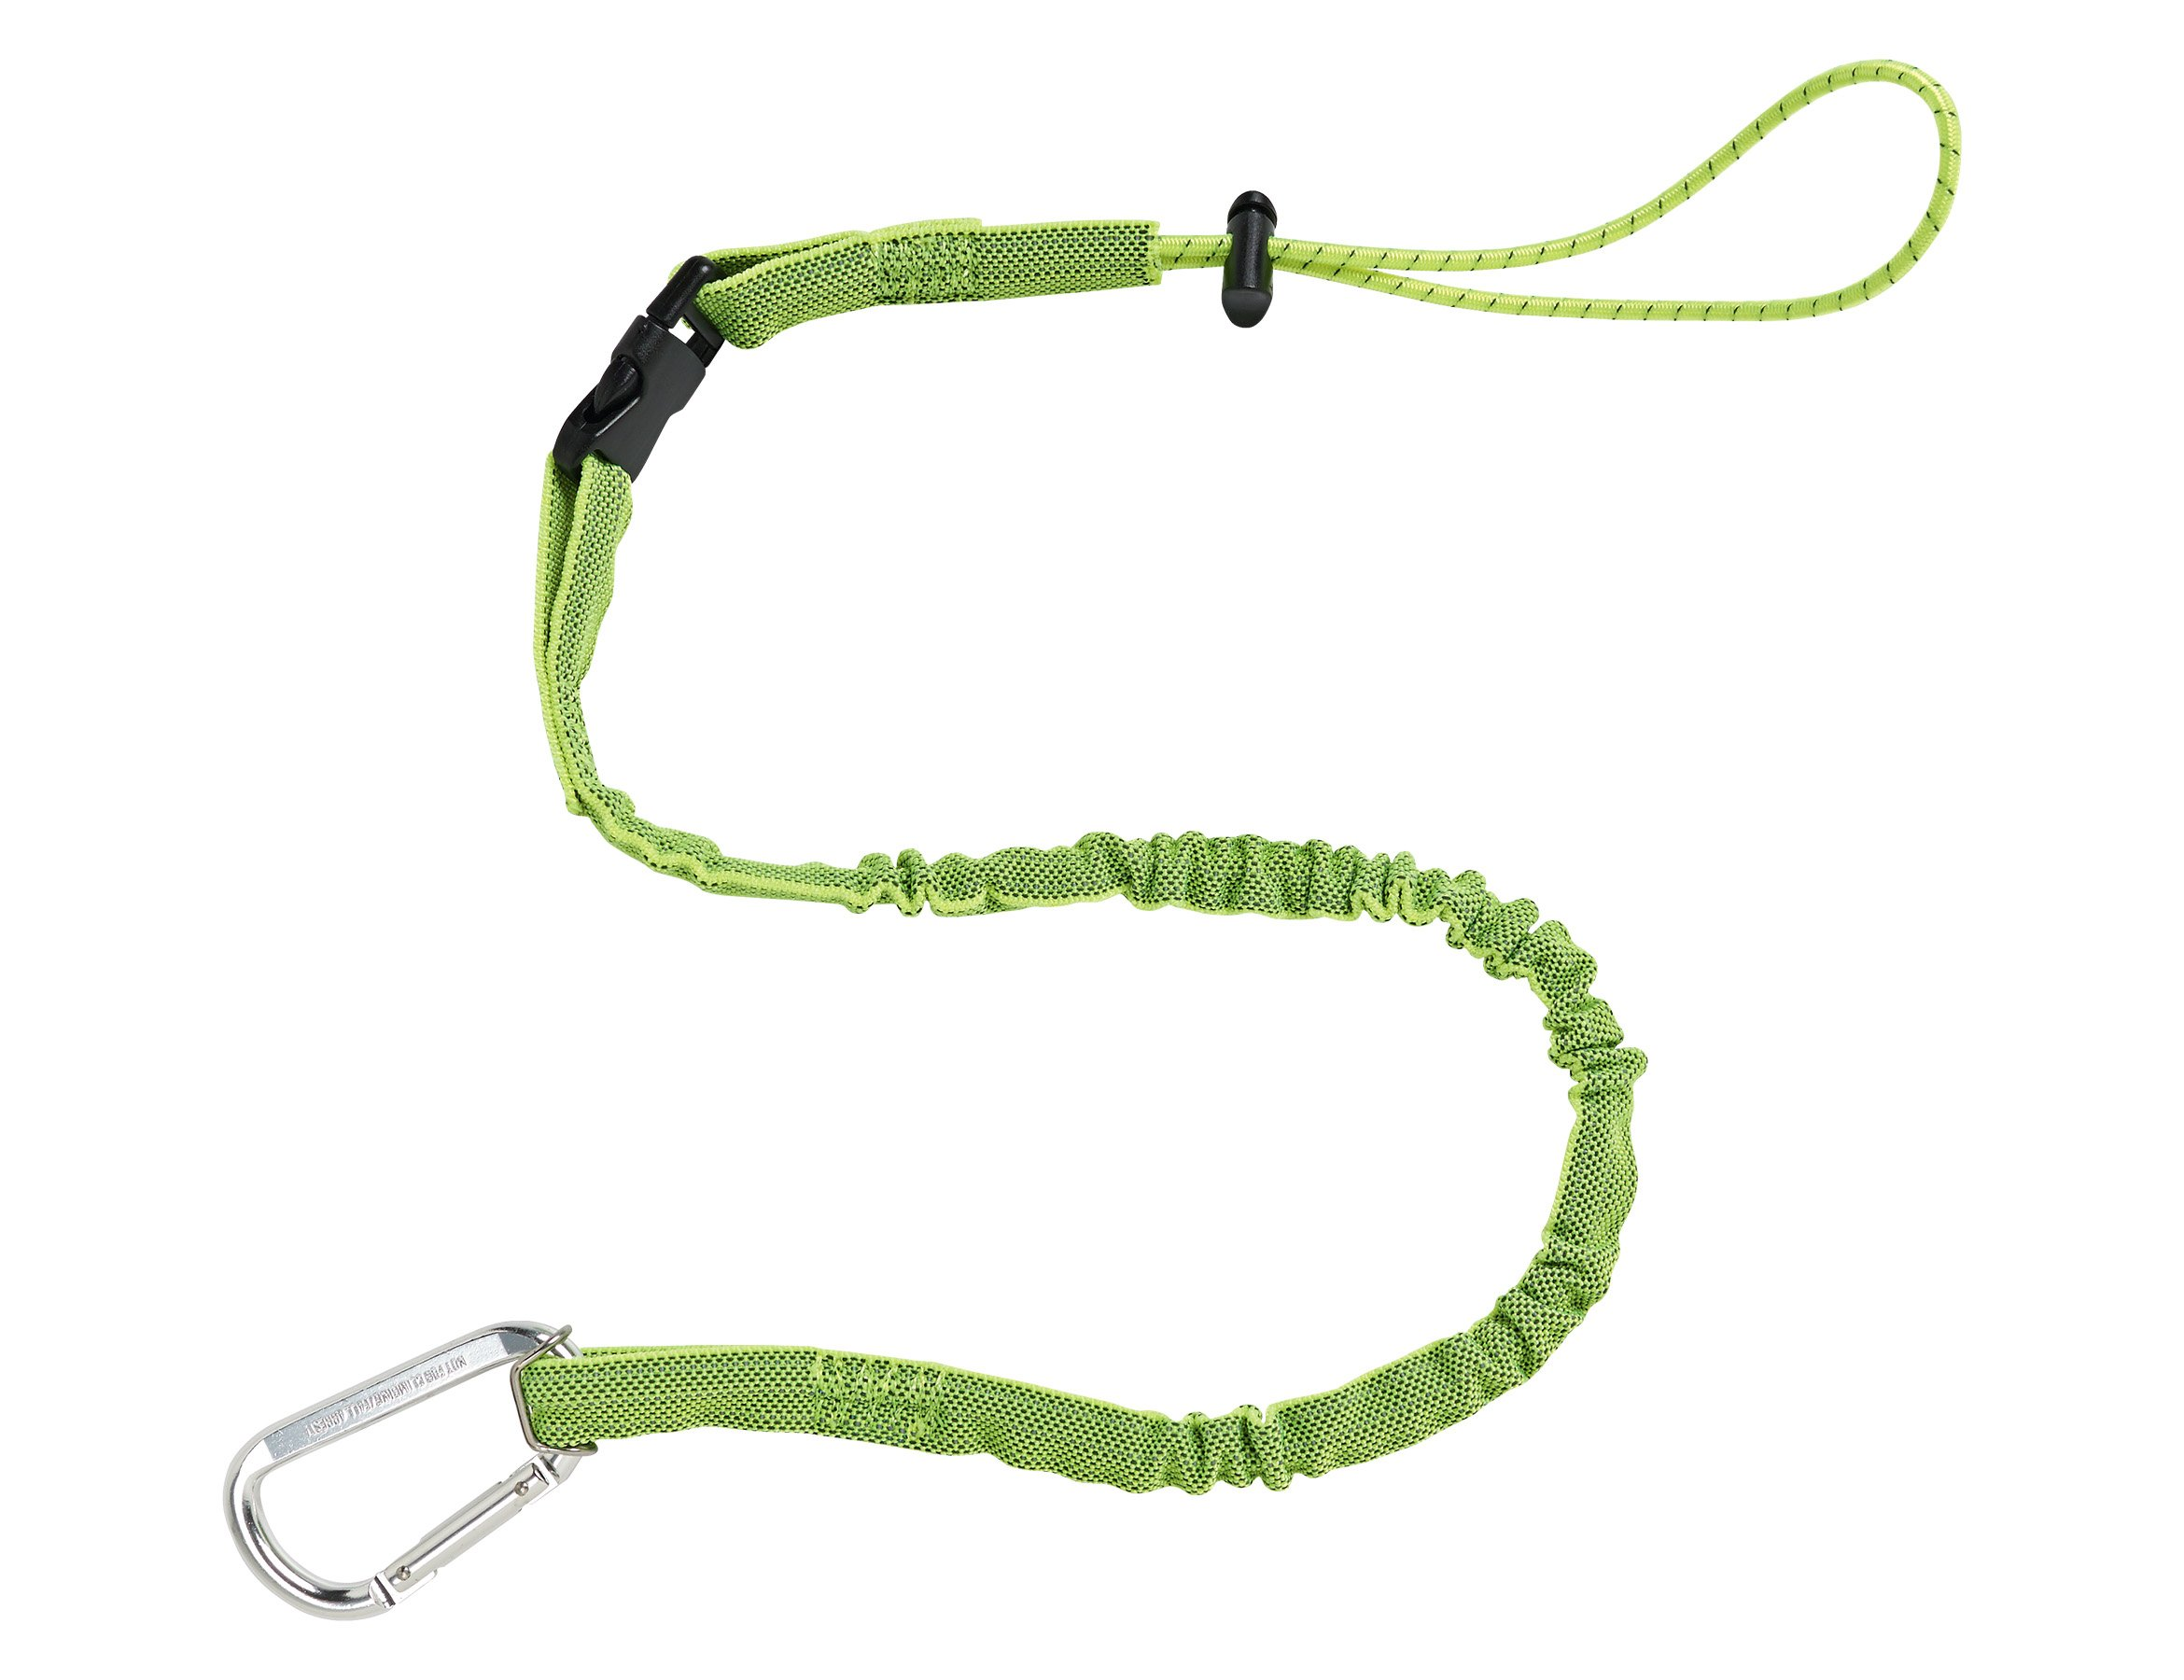 Ergodyne Squids 3102 Tool Lanyard with Single Carabiner and Detachable Adjustable Loop End, Standard Length, Lime, 5 Pounds